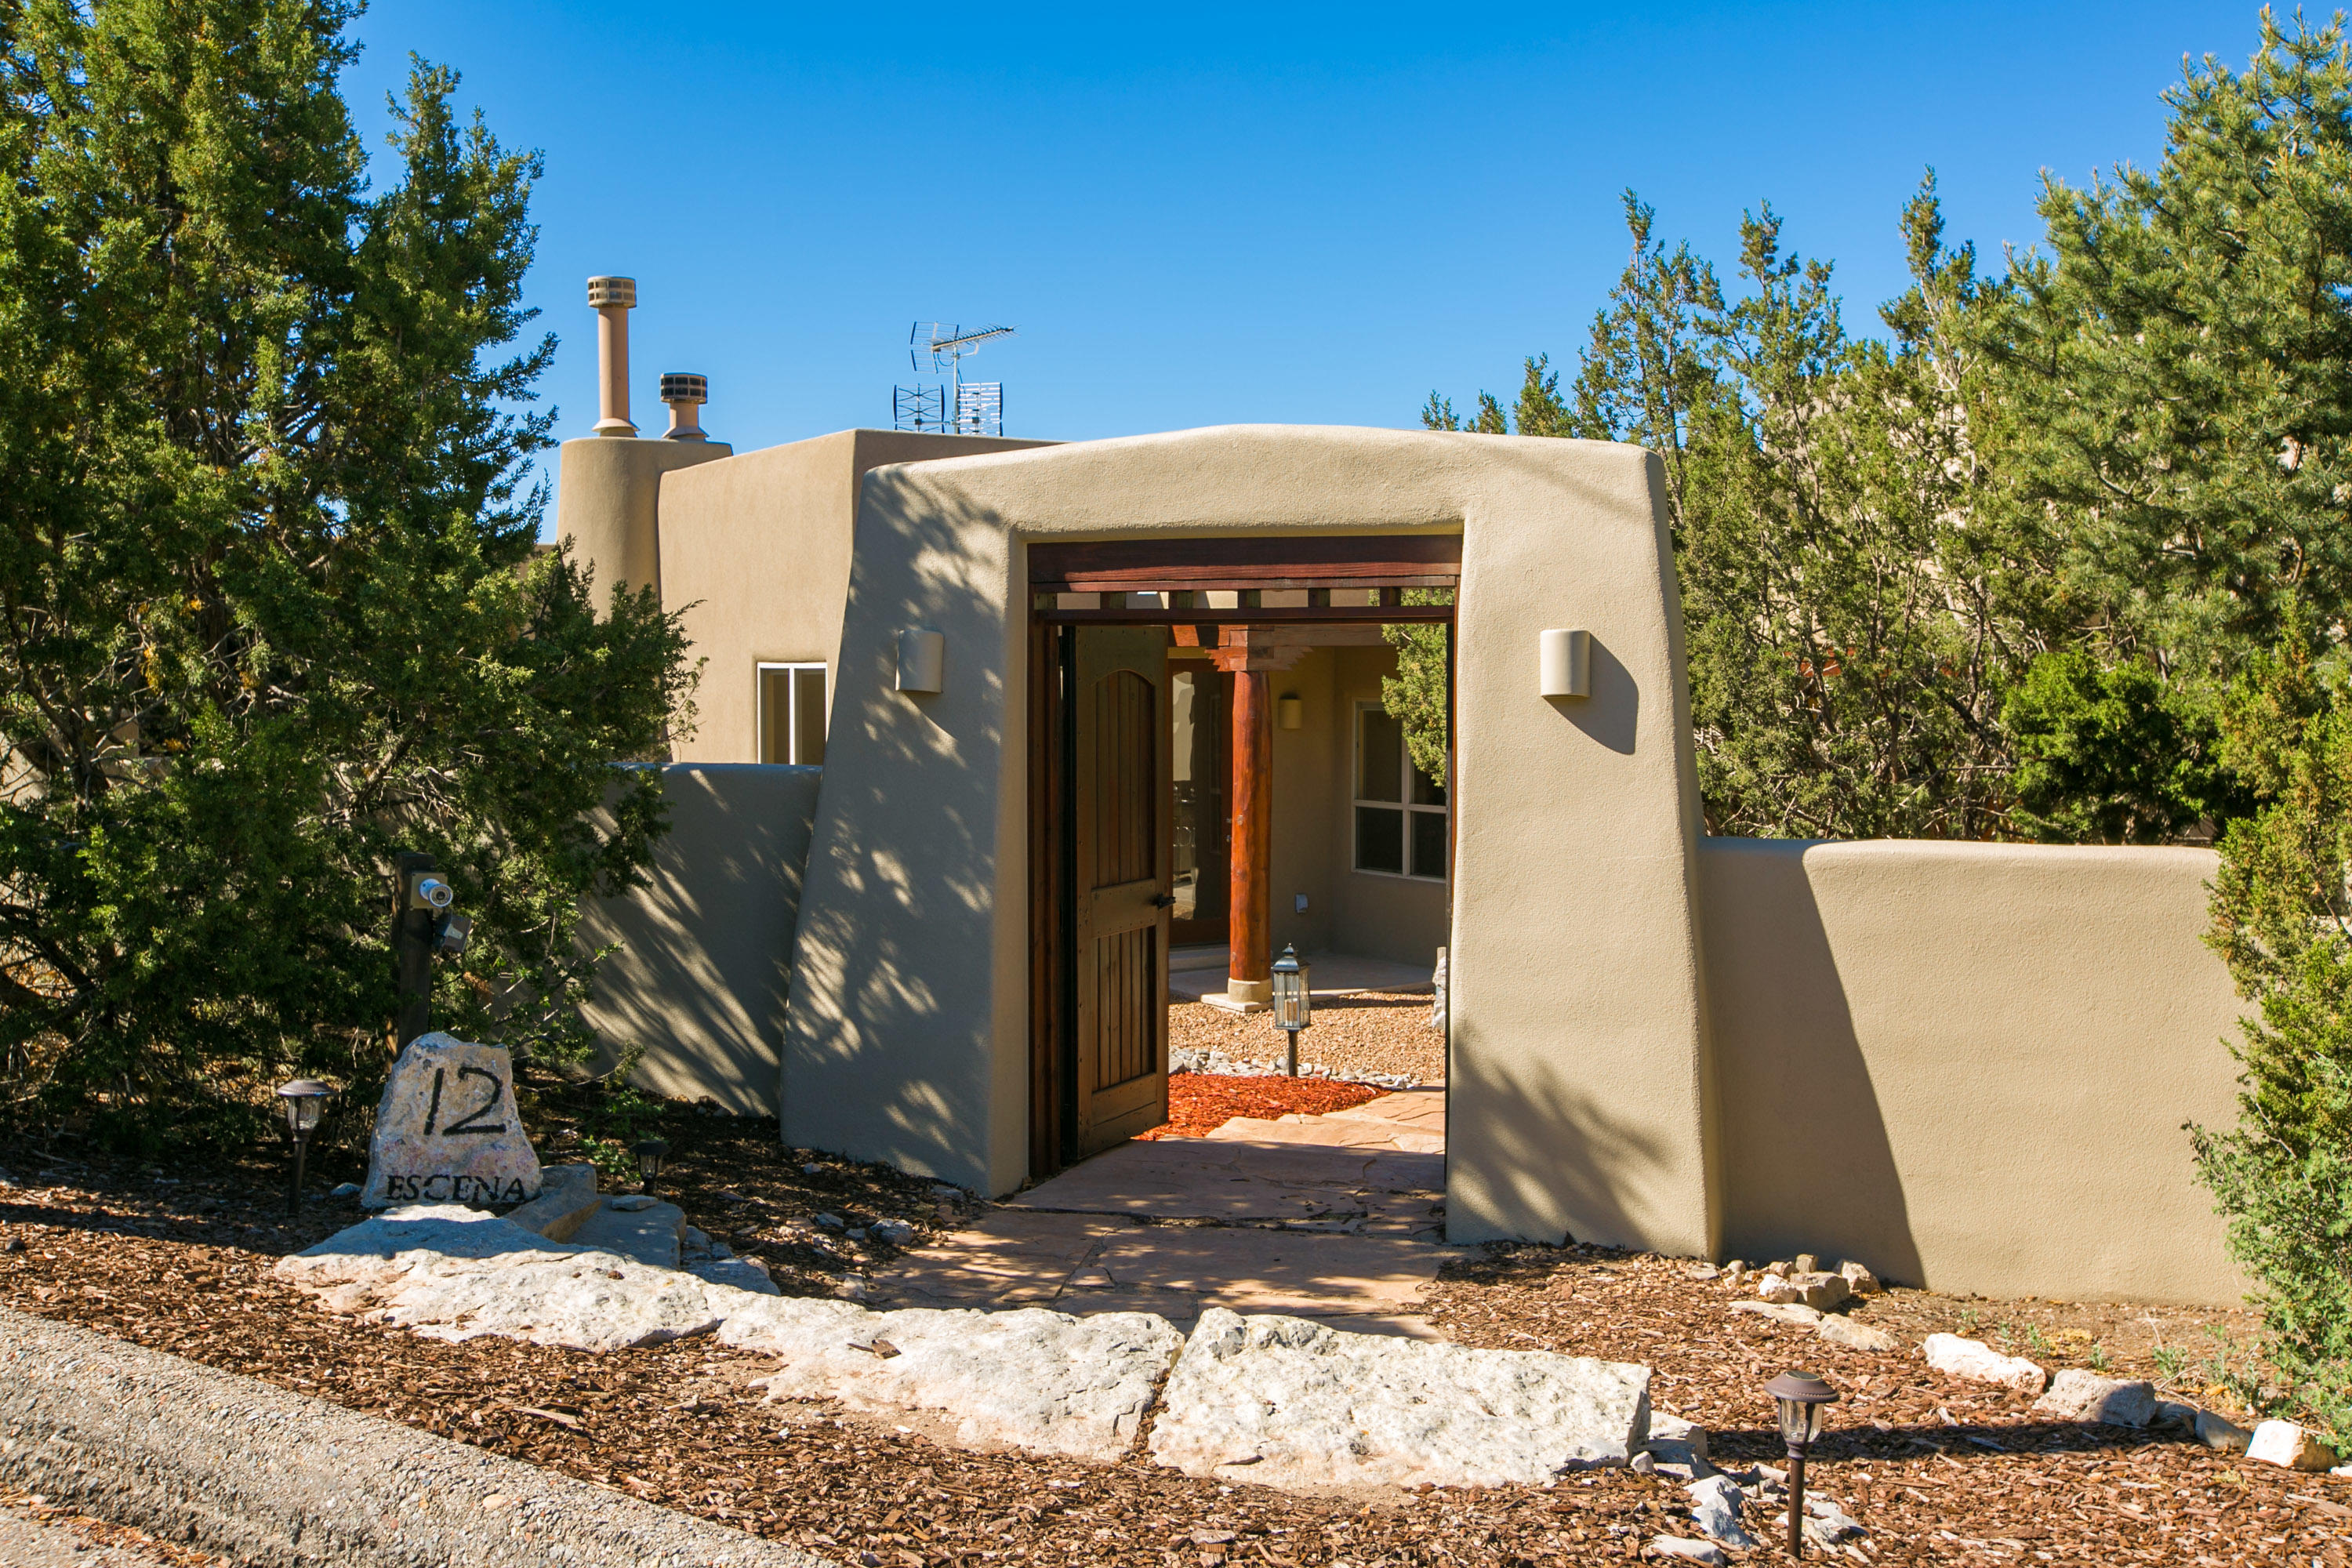 Custom built home is situated on a scenically supreme location with frameable views from most of the living areas of the Sandia & Manzano Mountains & the Tijeras Canyon, spectacularly showing the beauty and splendor of all that New Mexico has to offer. Enter this beautiful 4 bedroom, 3 bath, custom home through the private courtyard where you can enjoy the soothing sounds of the waterfall pond or a glass of wine next to the outdoor fireplace.  A large foyer & bright living room cheerfully welcomes any visitor into this elegant home that boasts pride of ownership.  Custom features such as diamond plaster gas kiva fireplaces (3), tongue and grove ceilings and vigas provide a dash of southwest flair.  Fully tiled flooring & radiant heat help those with allergies & pet